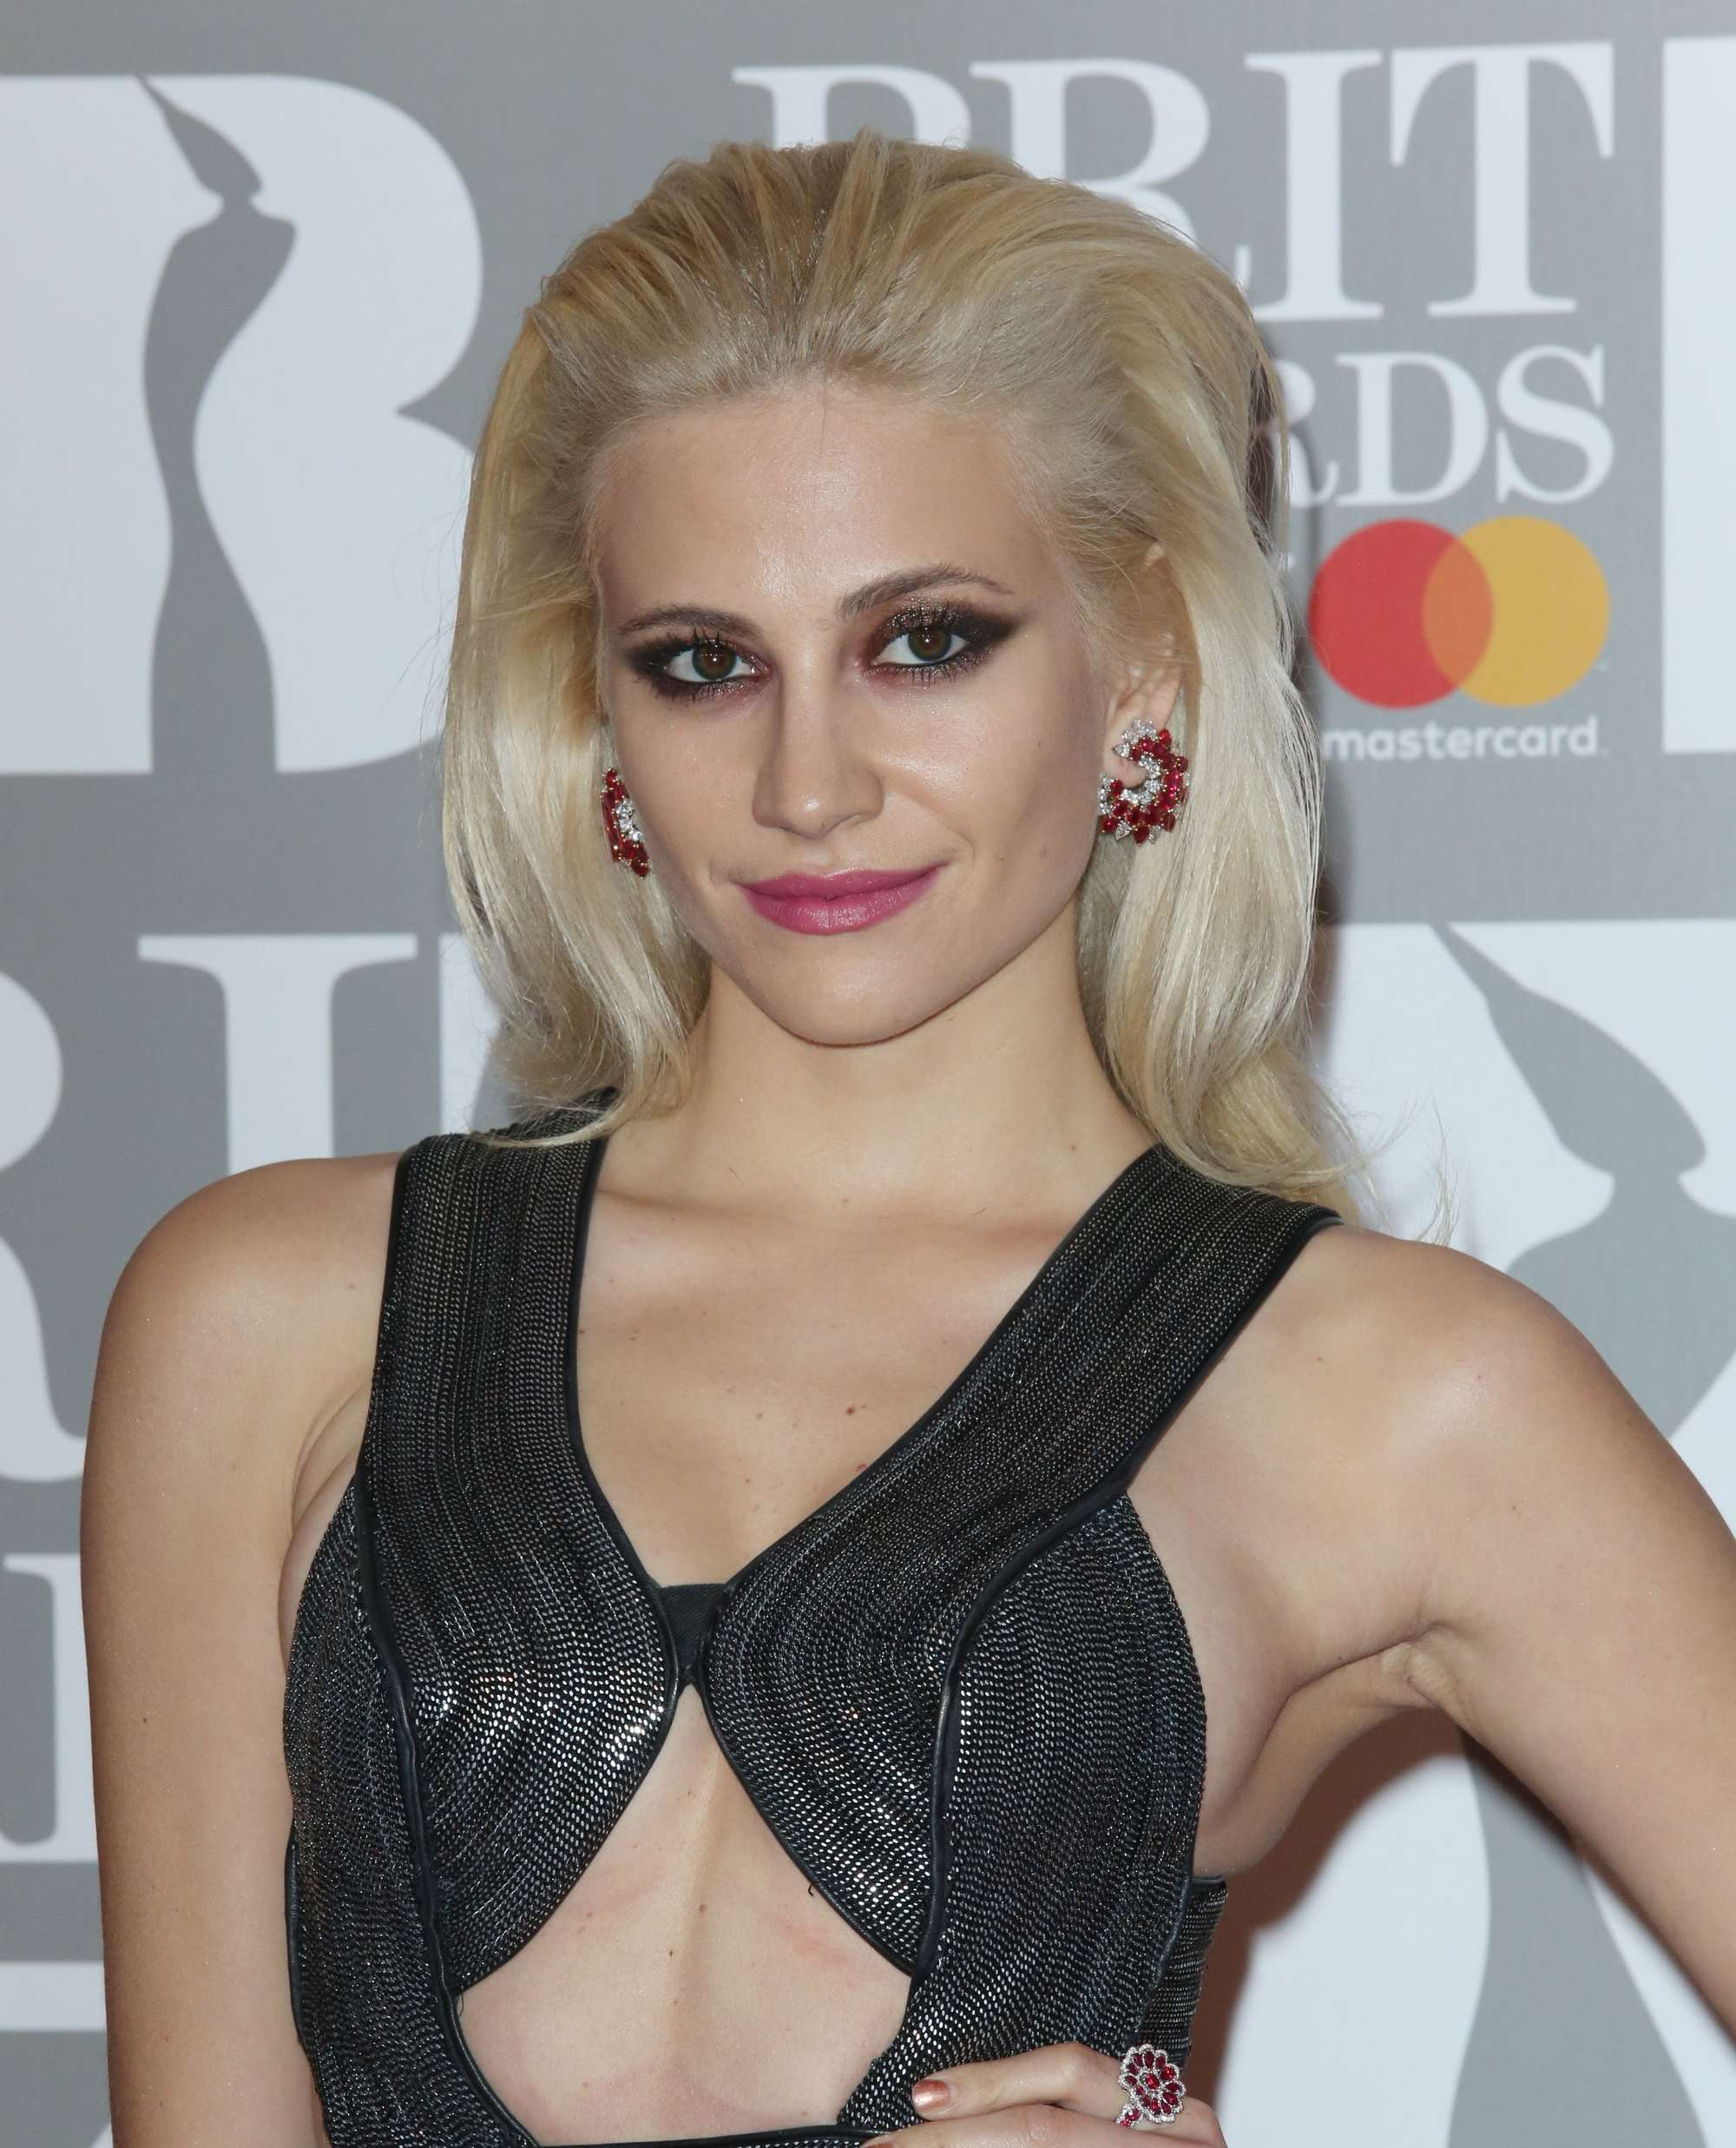 close up shot of Pixie Lott with slicked back blonde hair, wearing all black on the brit awards 2017 red carpet